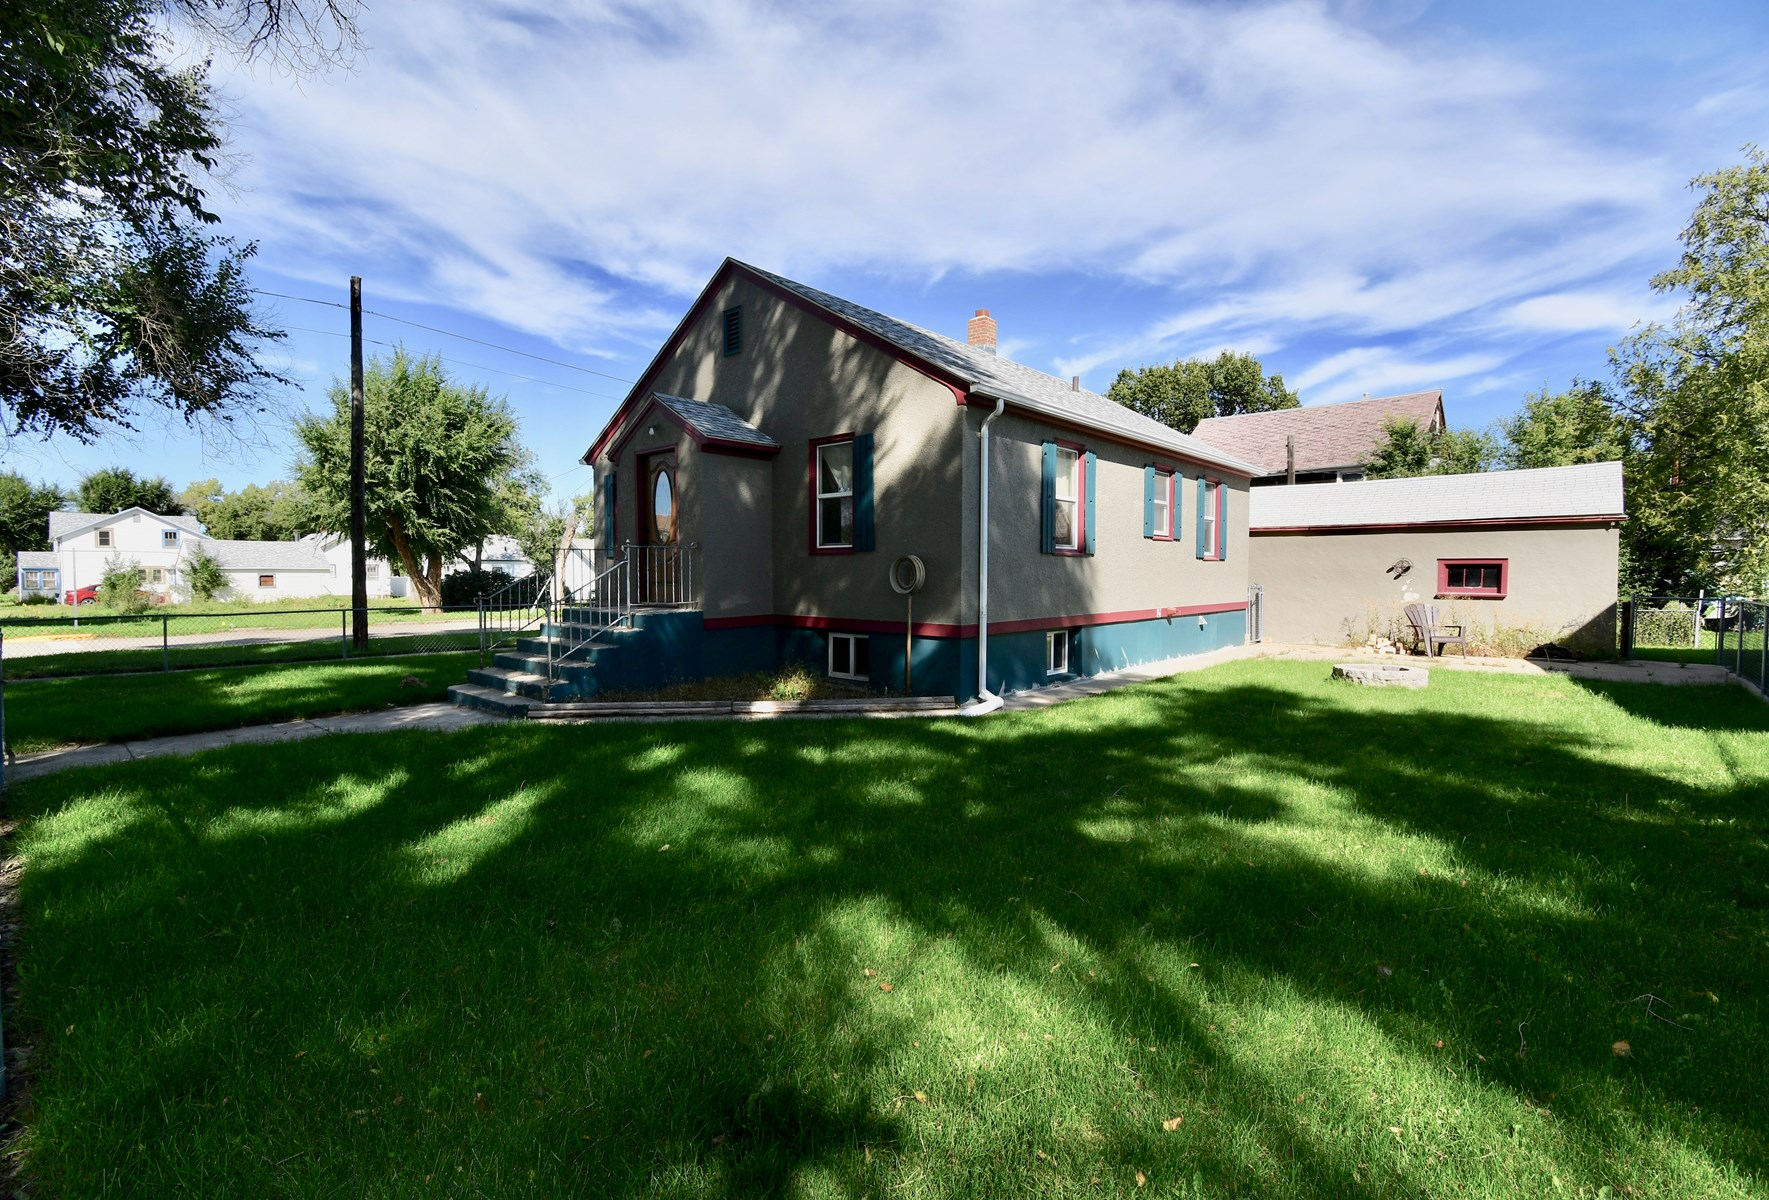 3 Bedroom, 2 Full Bath Home for Sale in Glendive, MT